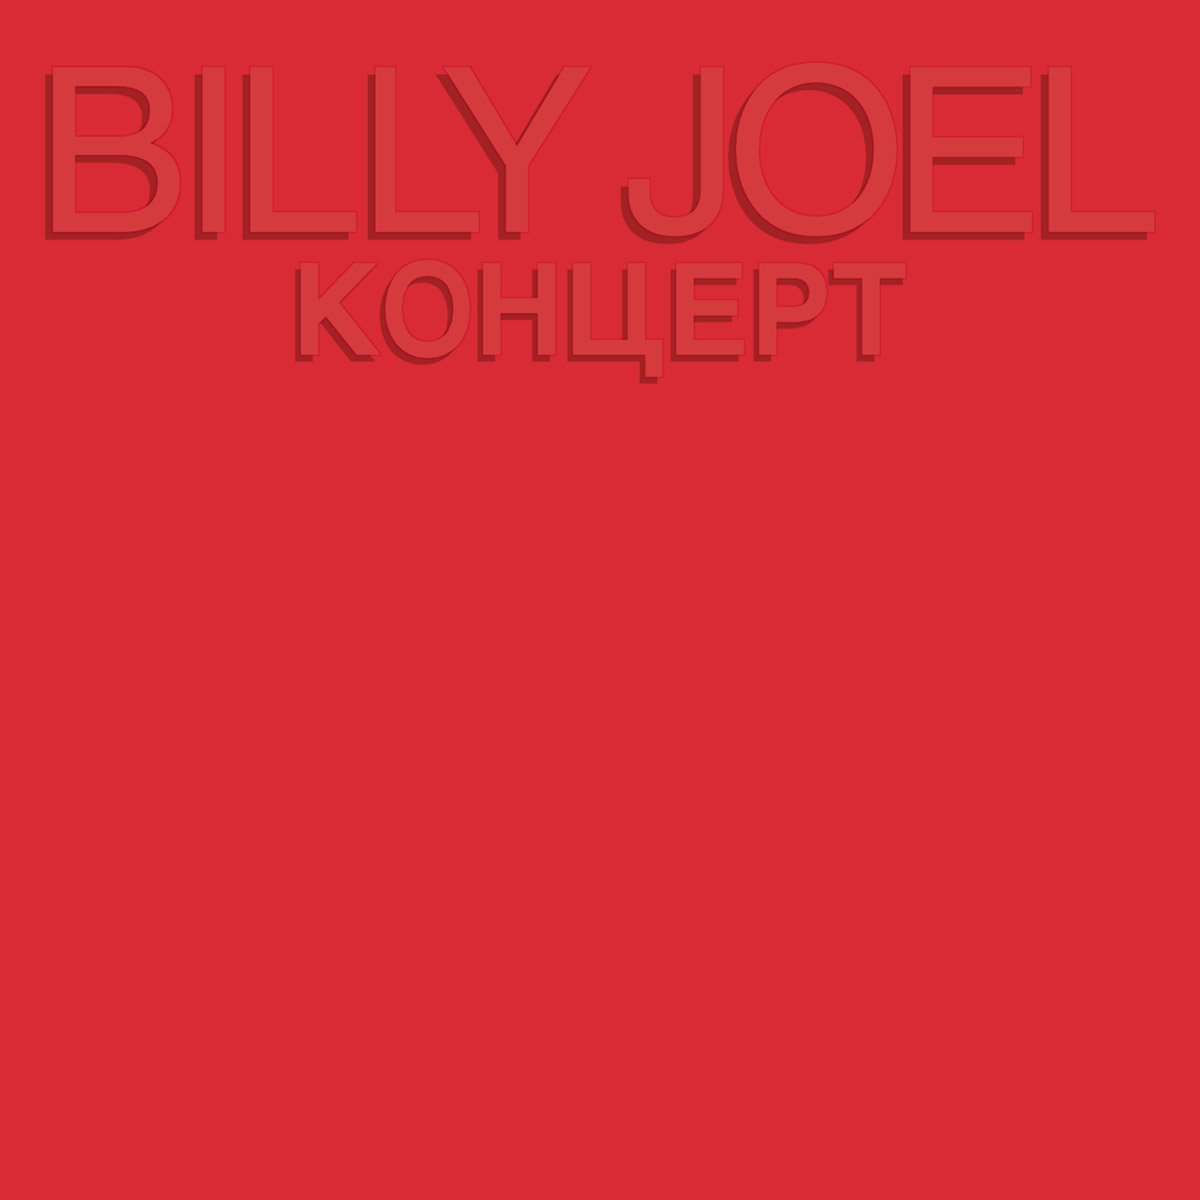 Billy Joel - Kohuept